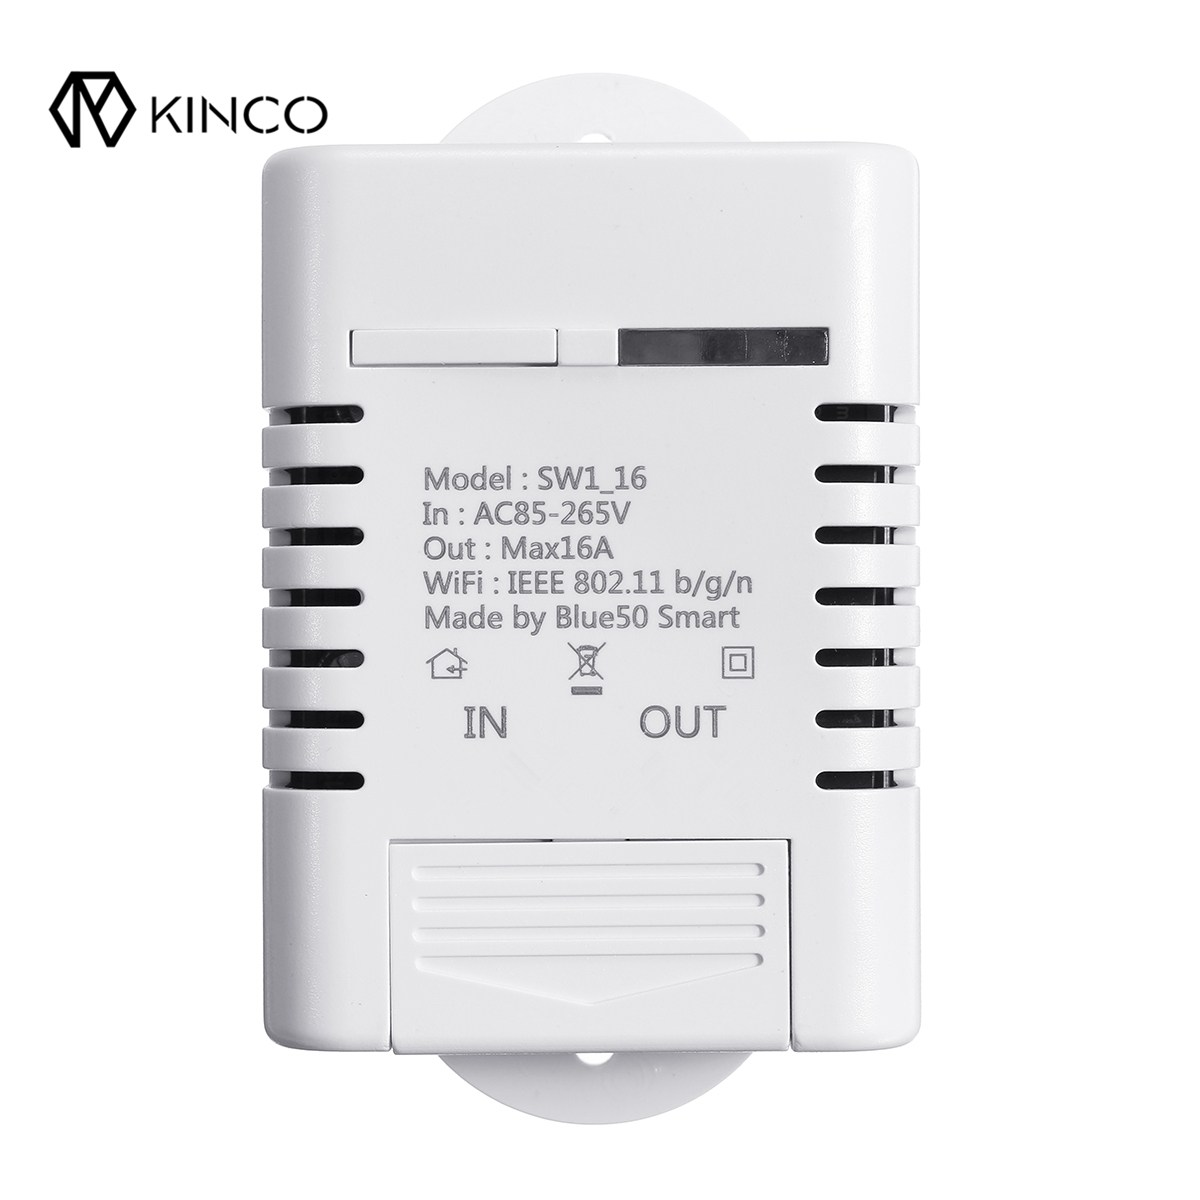 KINCO Smart WiFi Wireless Switch 16A Timing Module Power APP Remote Control Smart Home automation module for GOOGLE HOME Alexa